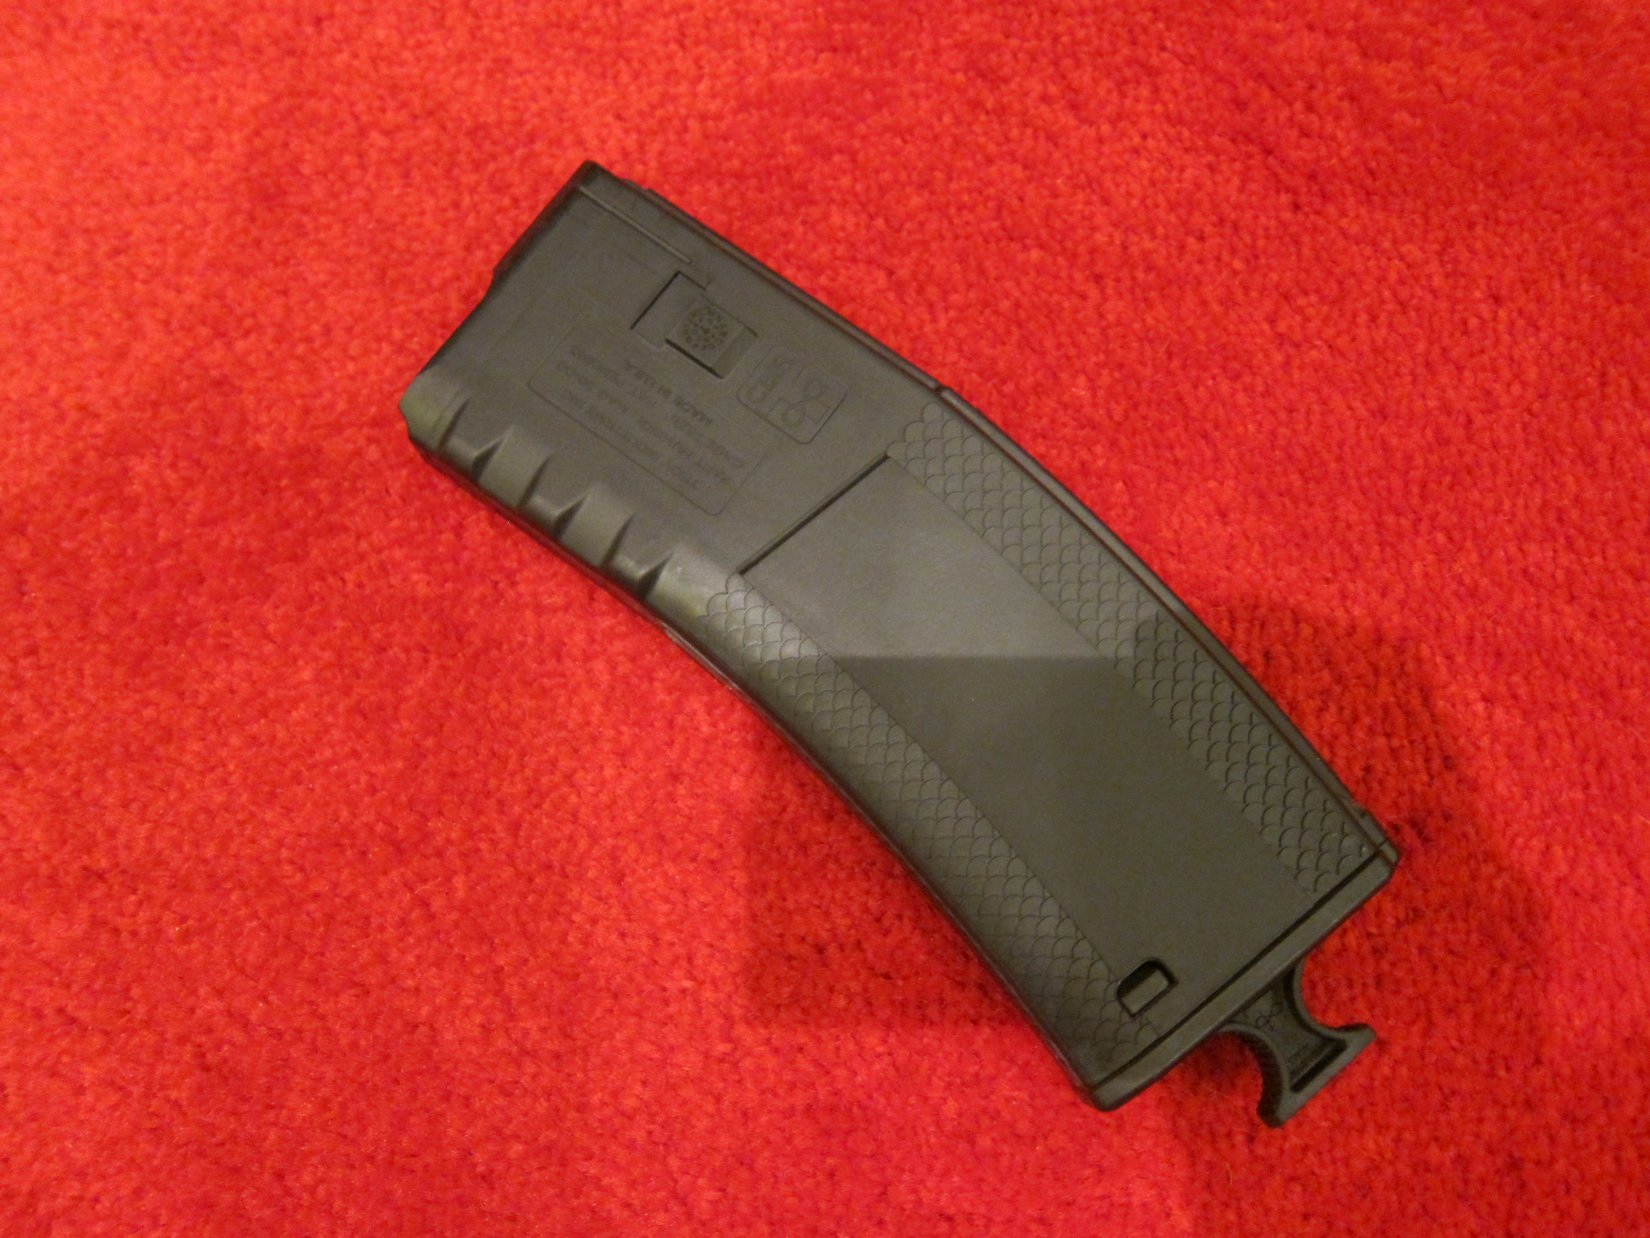 Troy Industries BattleMag 30 Round Polymer AR Rifle Magazine 5.56mm .223 Rem. SHOT Show 2012 DefenseReview.com DR 1 Troy BattleMag 30 Round 5.56mm NATO/.223 Rem. Lightweight Polymer Rifle Magazine for Tactical AR 15 Rifle/Carbine/SBR/Sub Carbines (Video!)